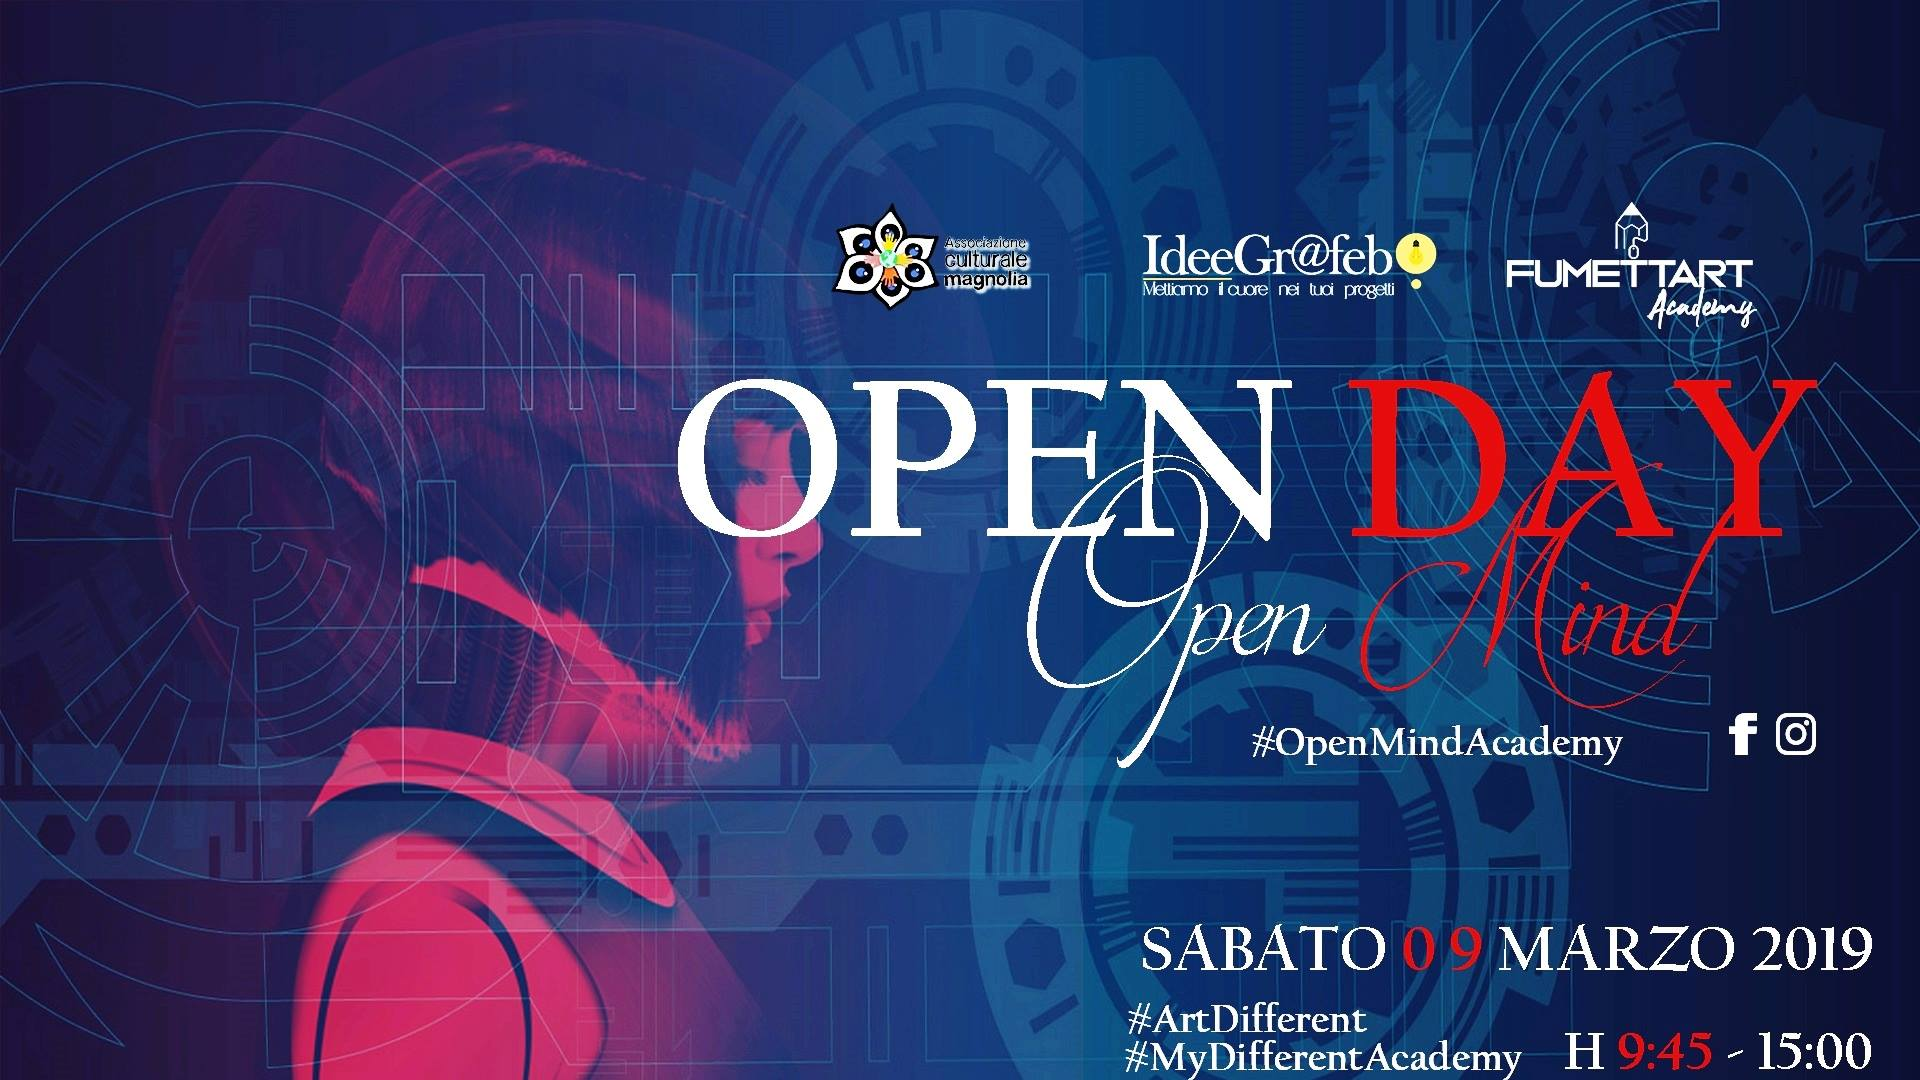 Open Day: Open Mind